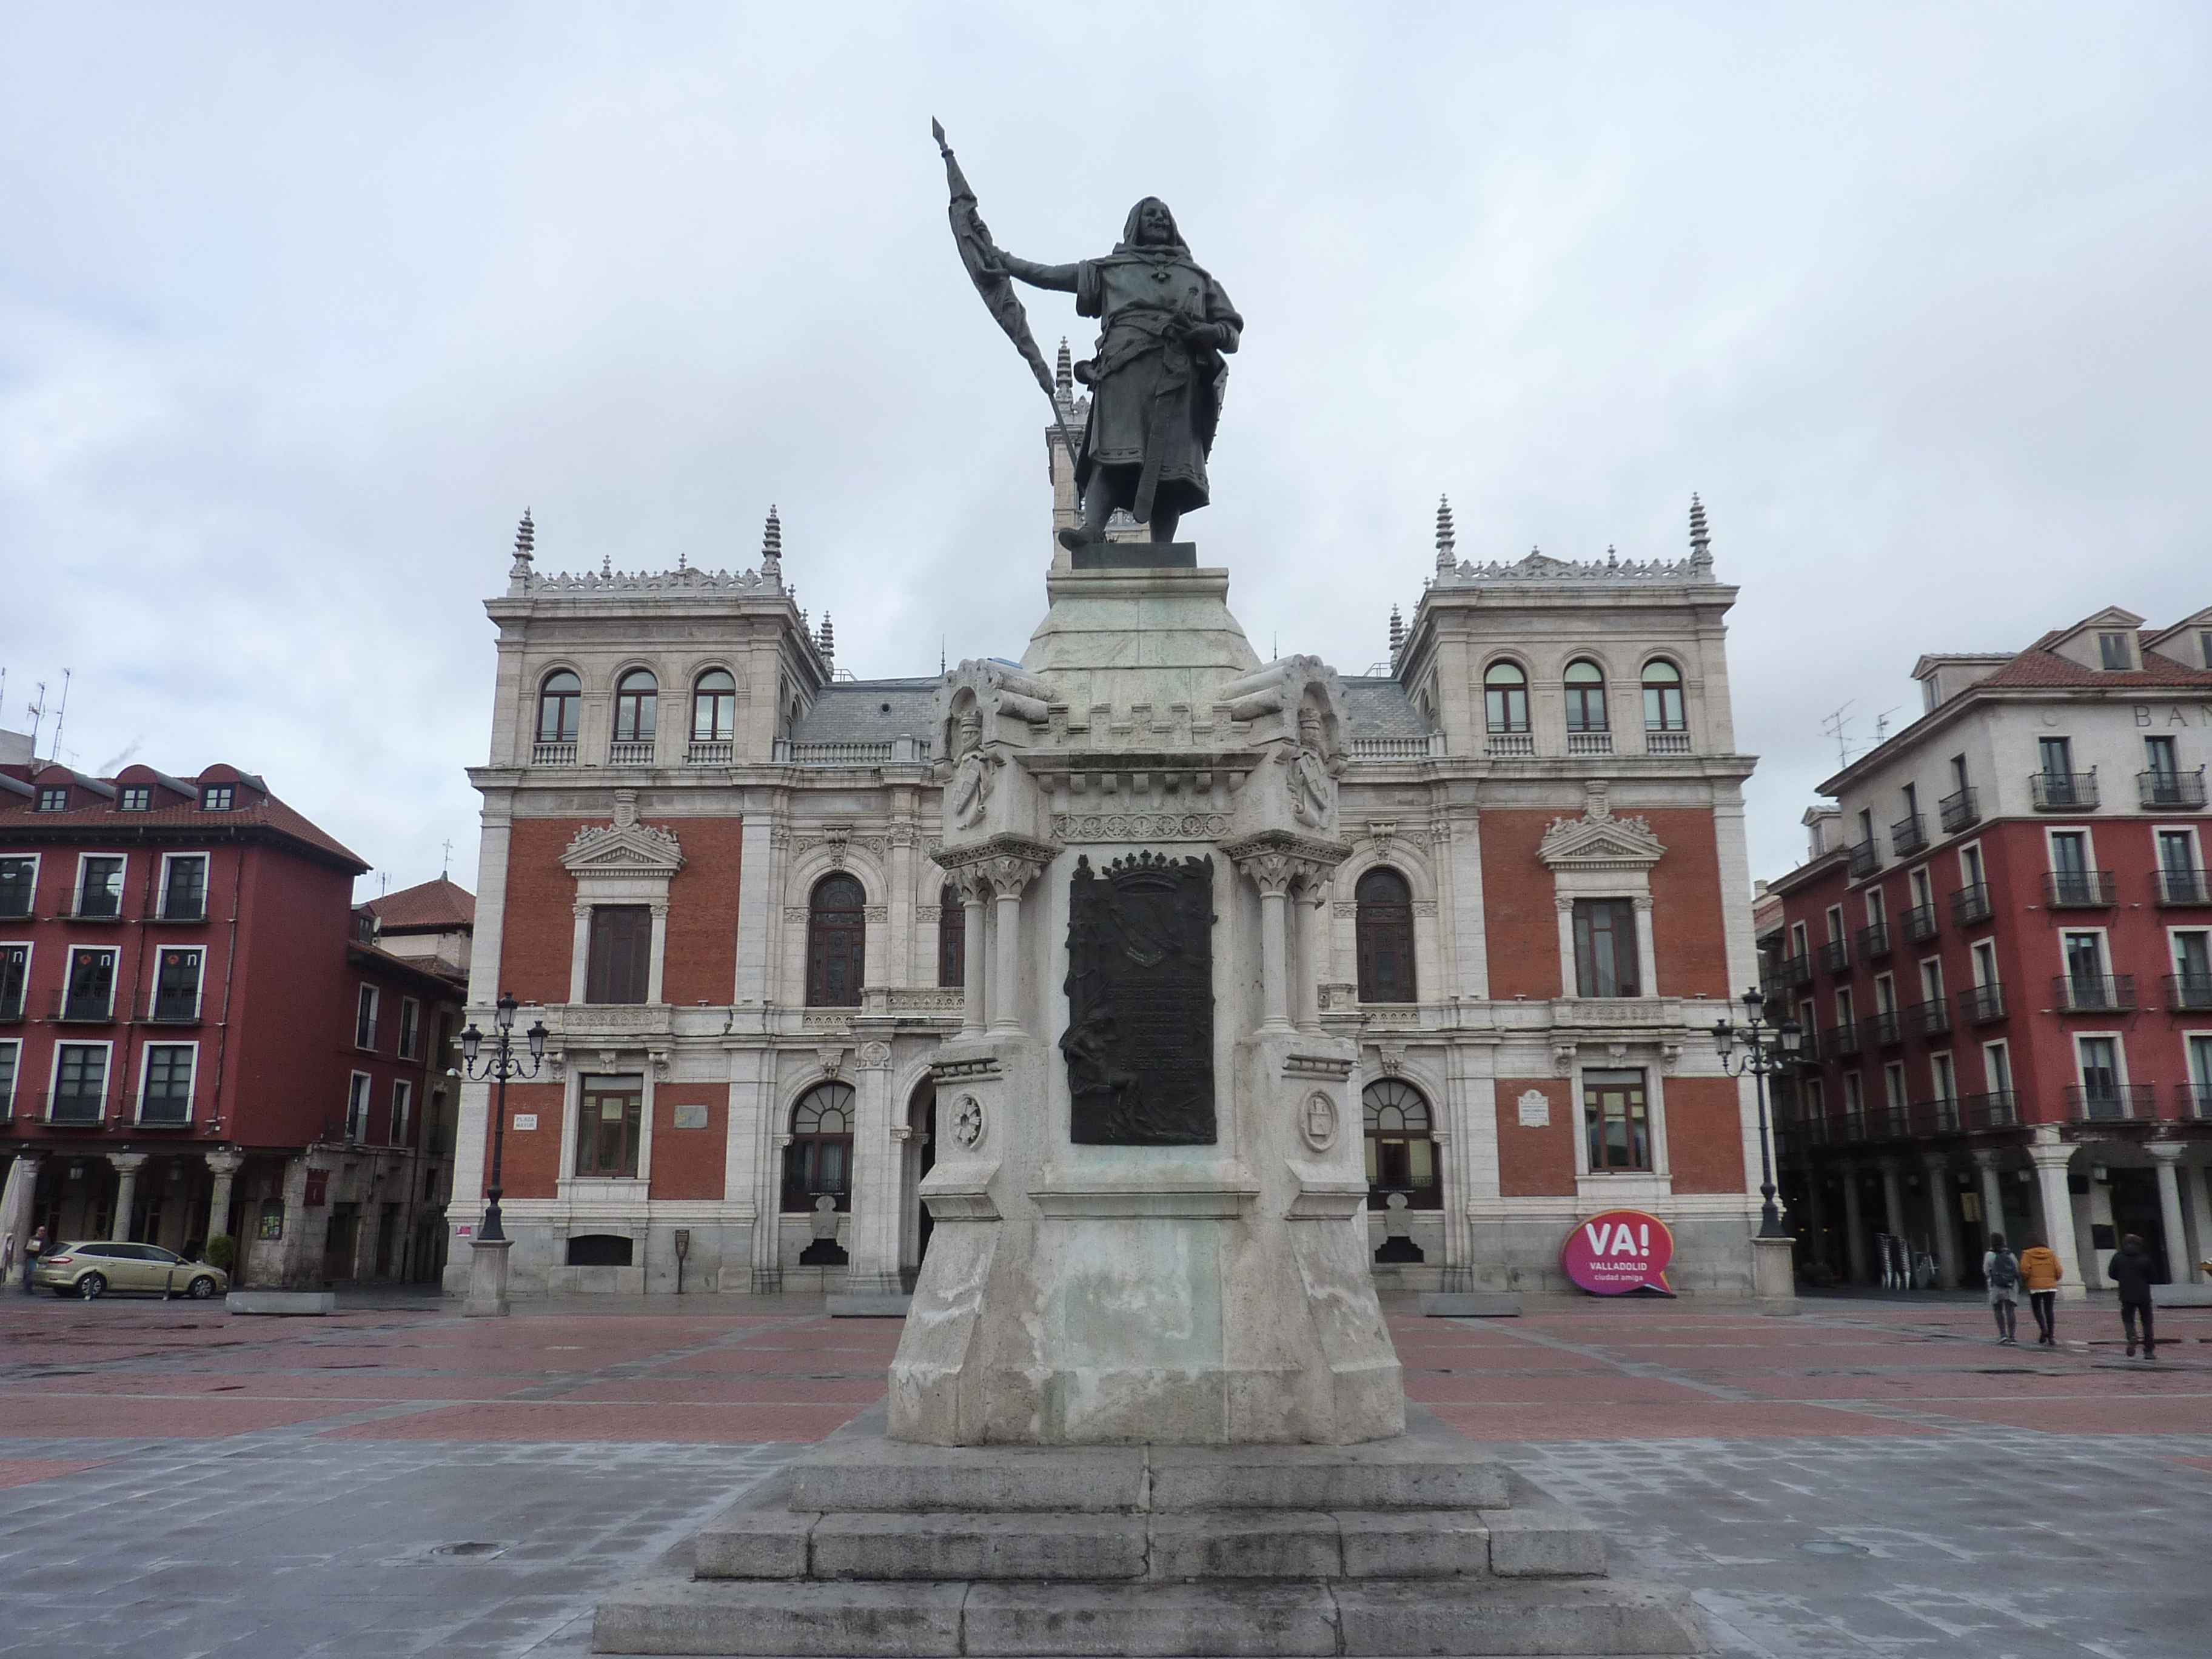 Grande Statue De Valladolid Sur La Plaza Mayor en Images